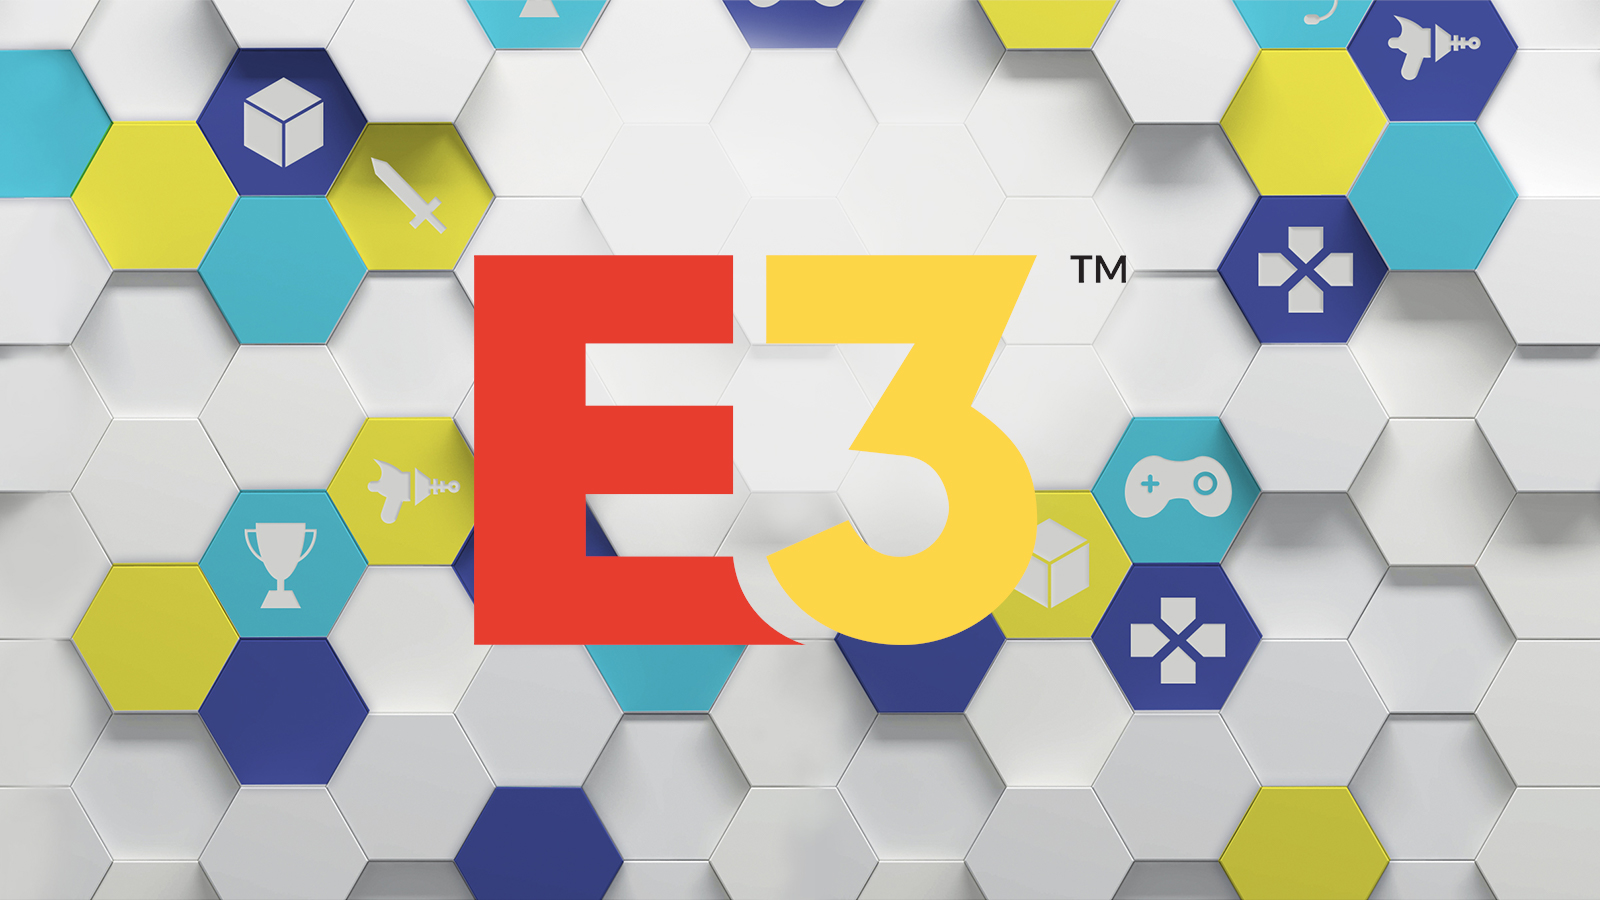 E3 2018 planning conference